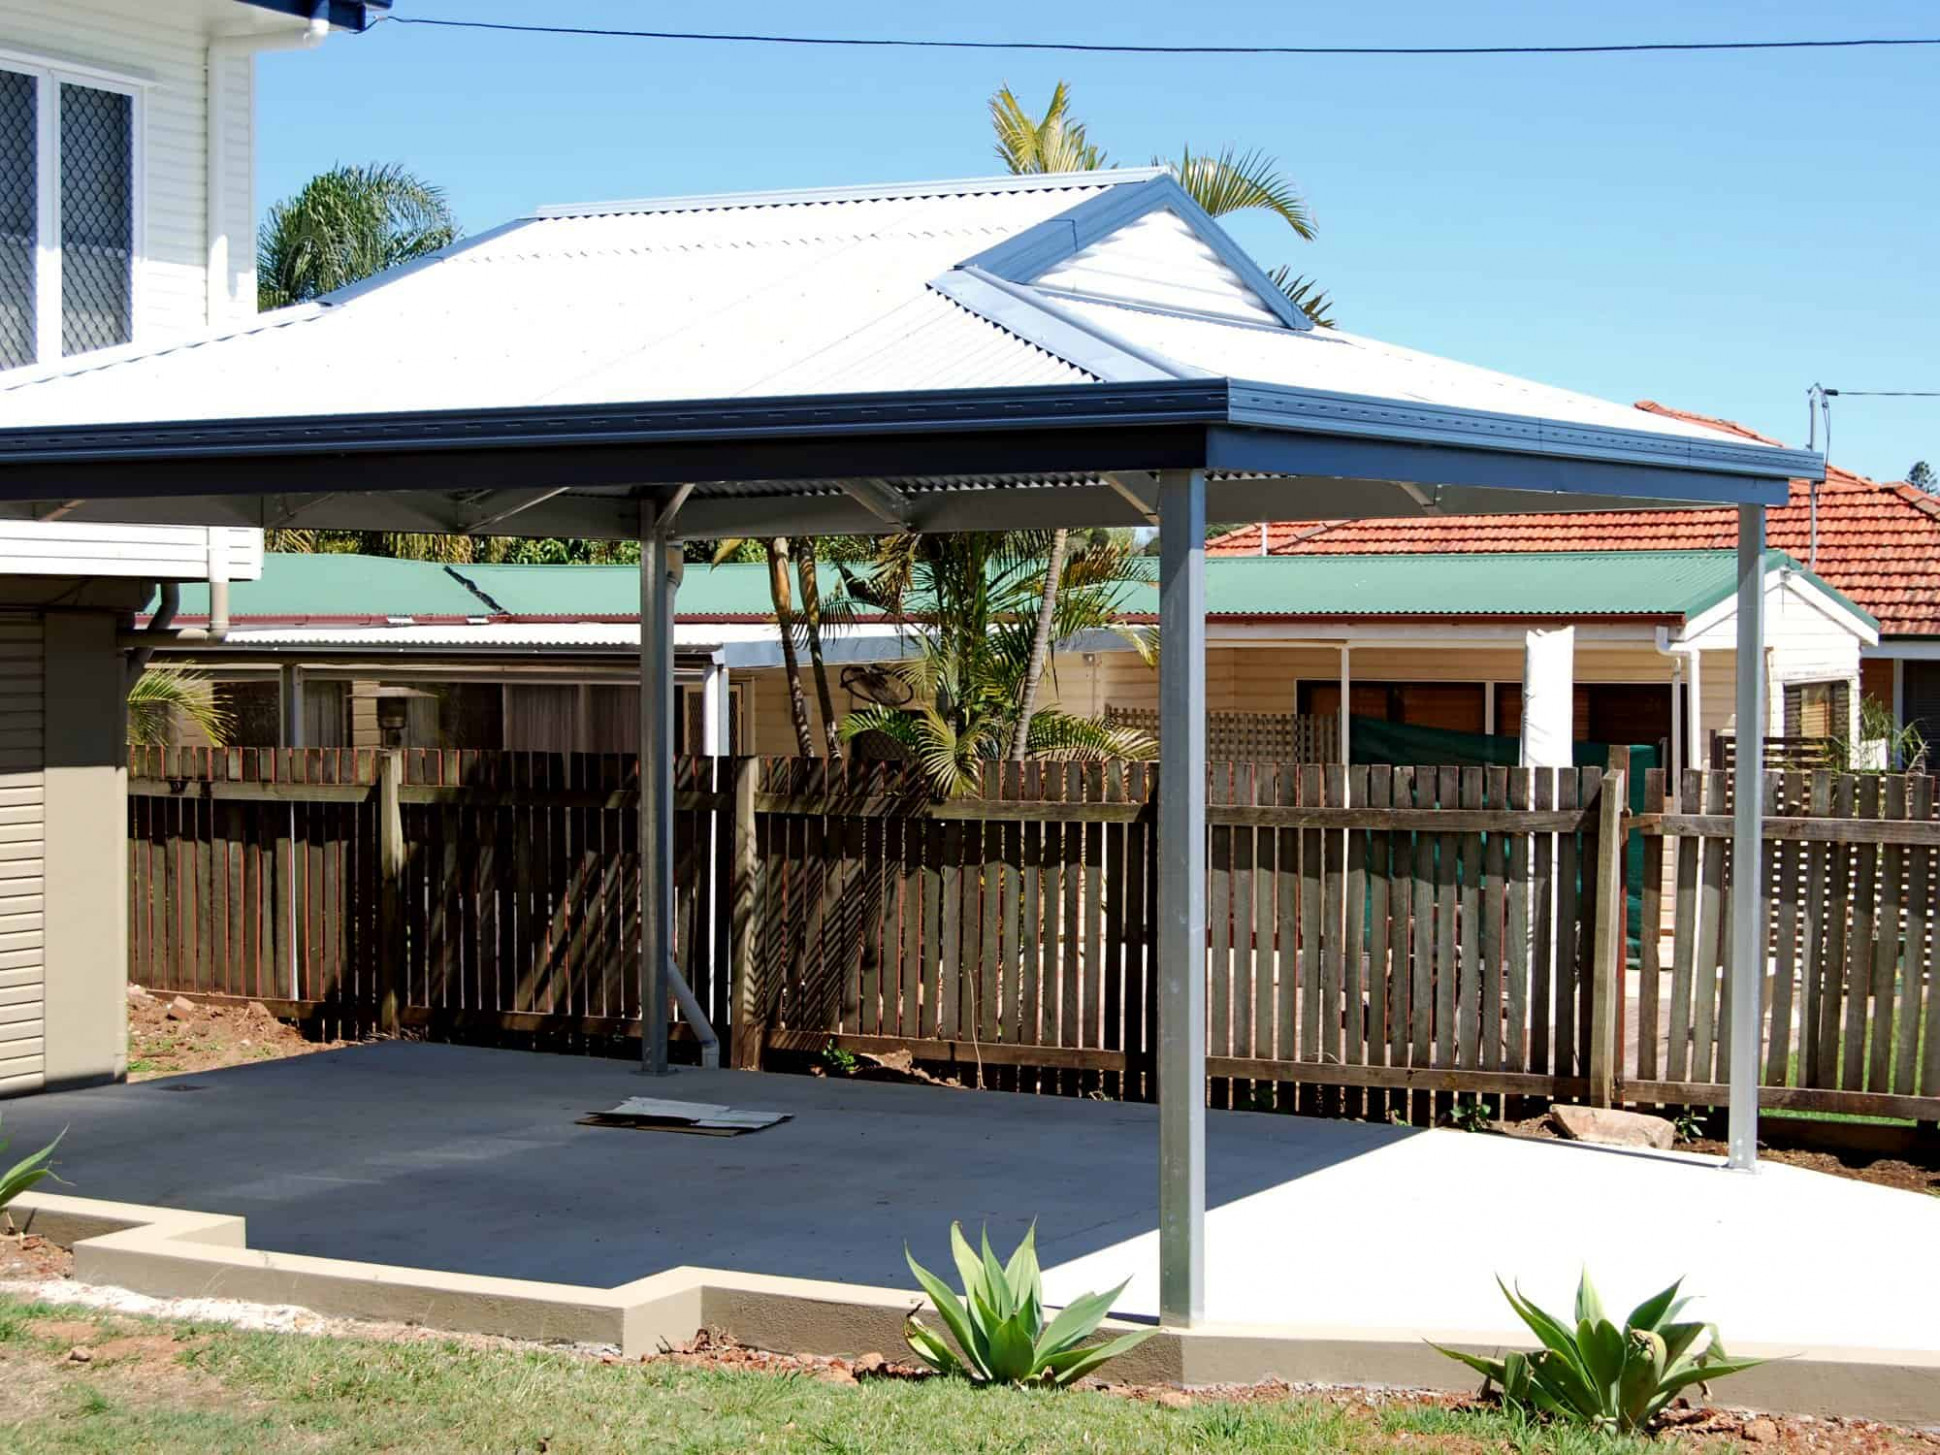 Carports | Any Size, Any Style | Carport Kits Or Installed Carport Roof Angle